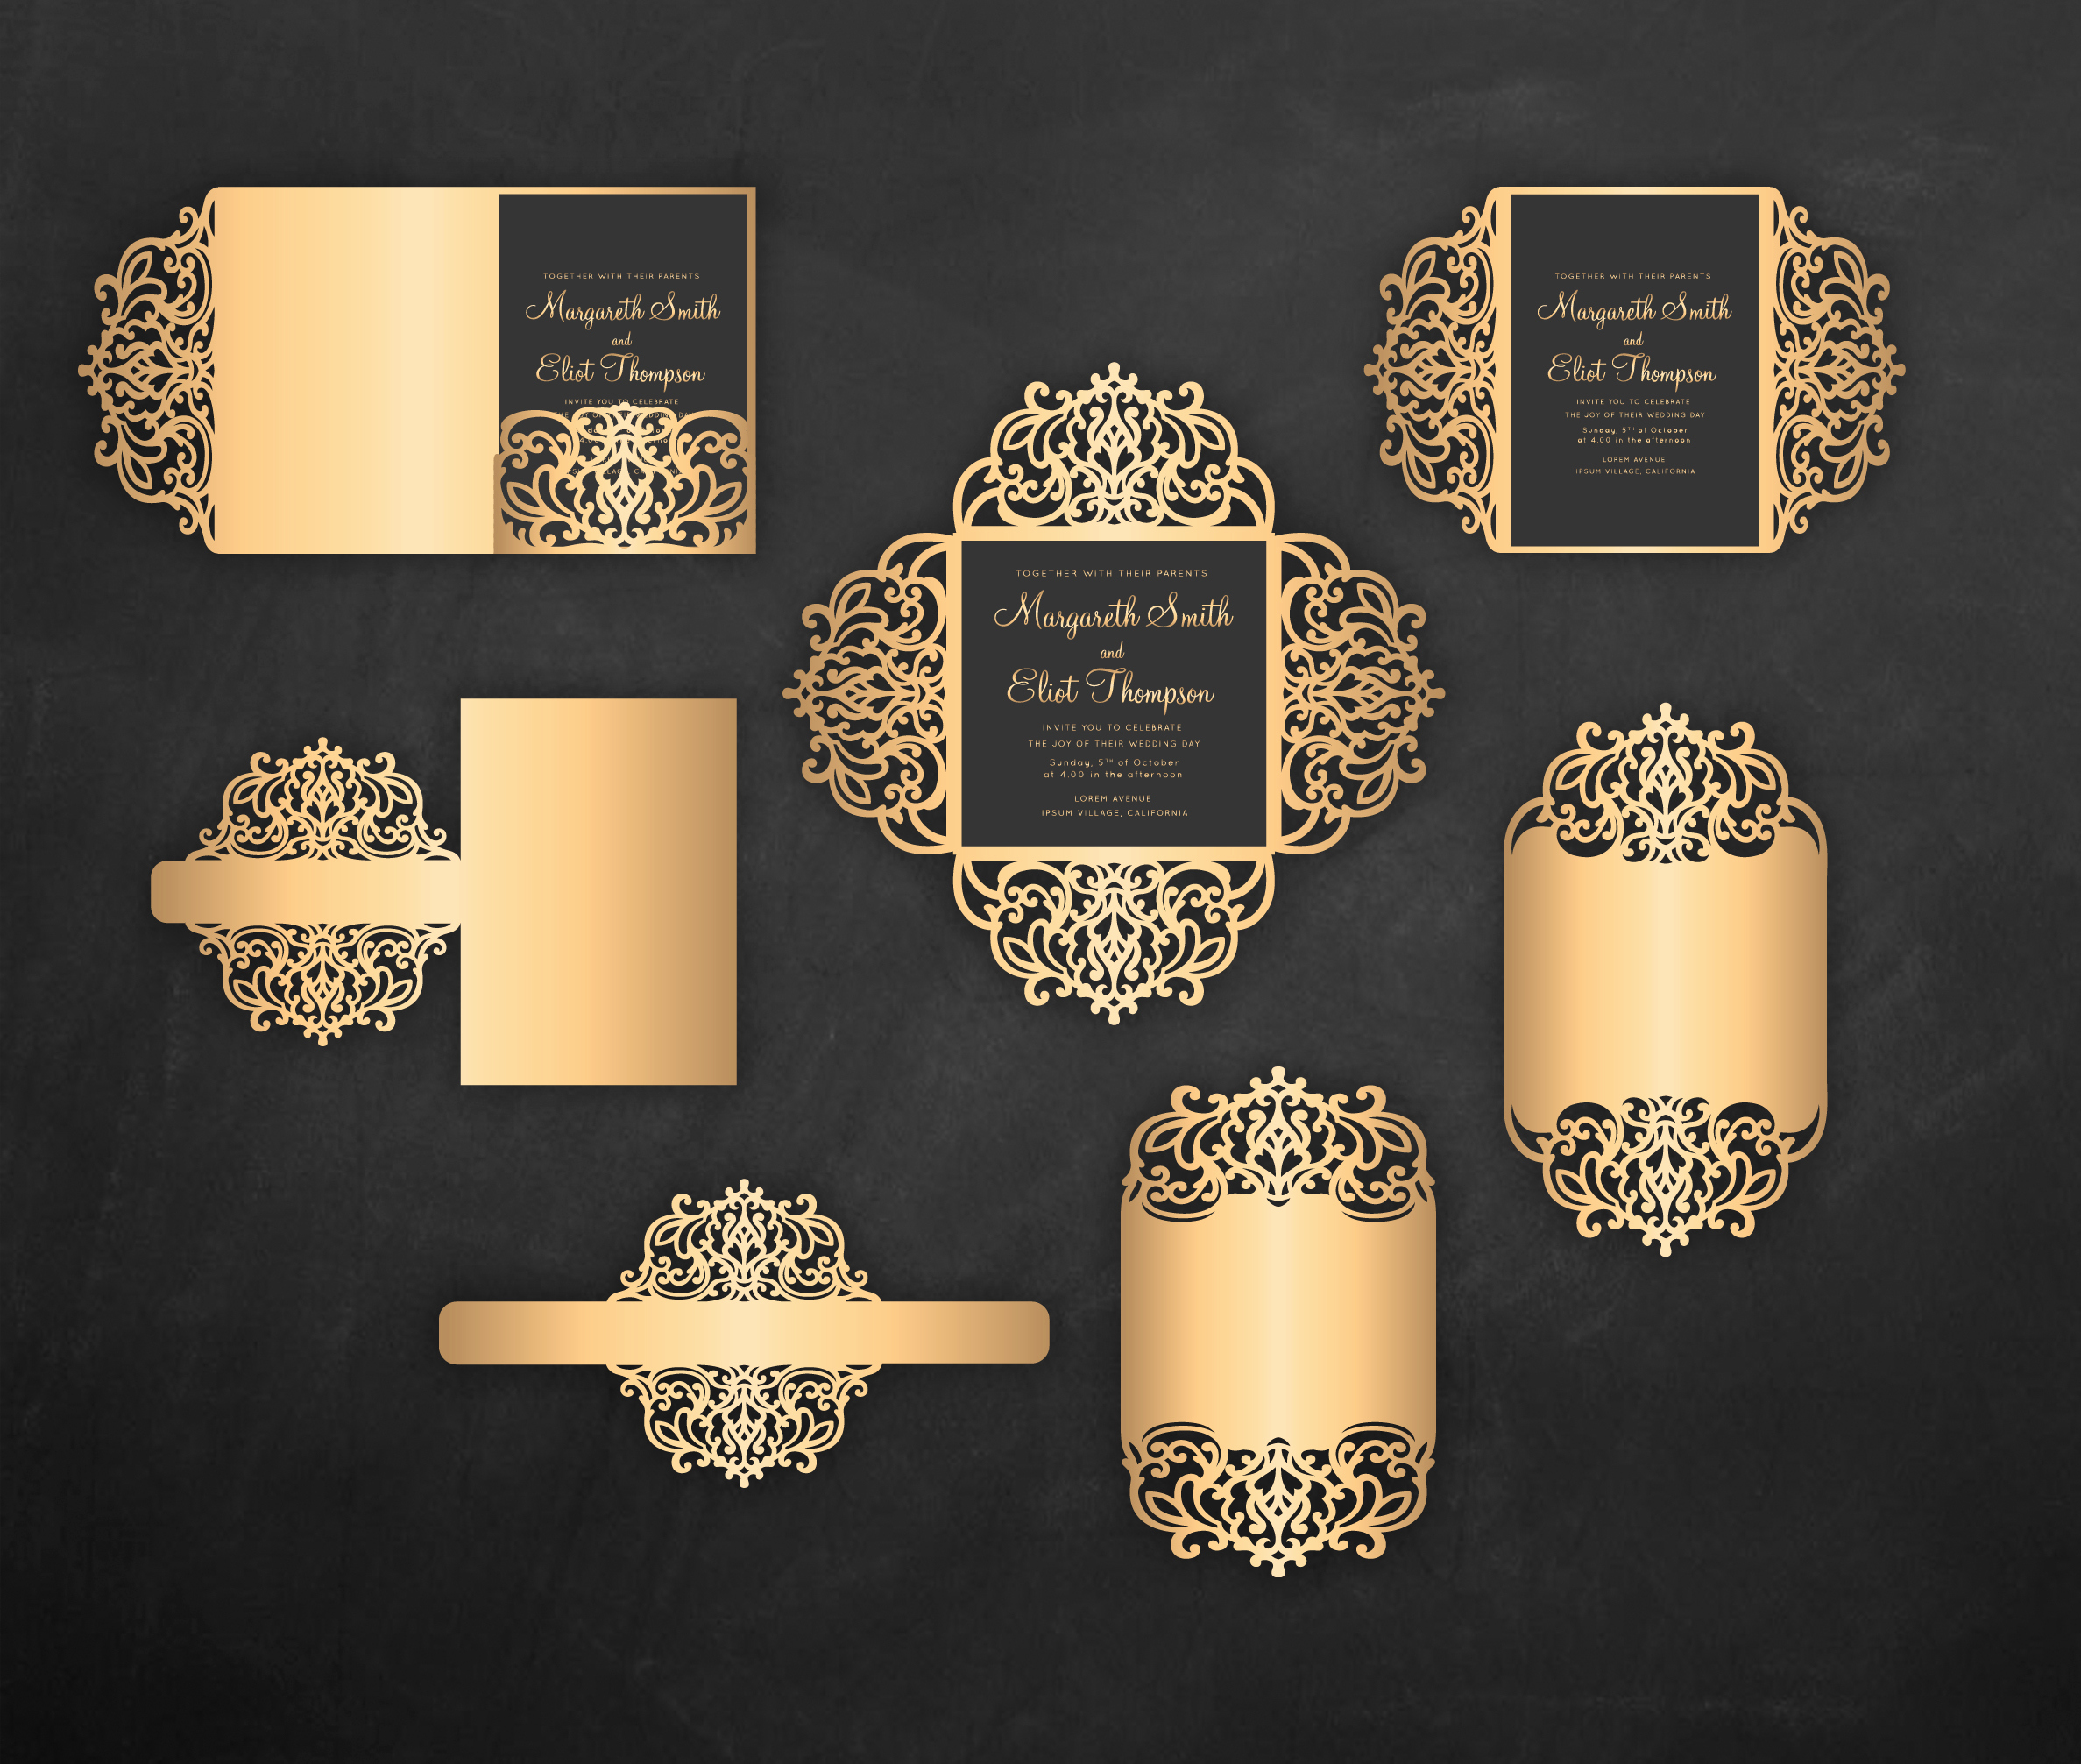 Cricut Wedding Invitation Templates Lovely Laser Cut Wedding Invitation Set 5x7 Cricut Template